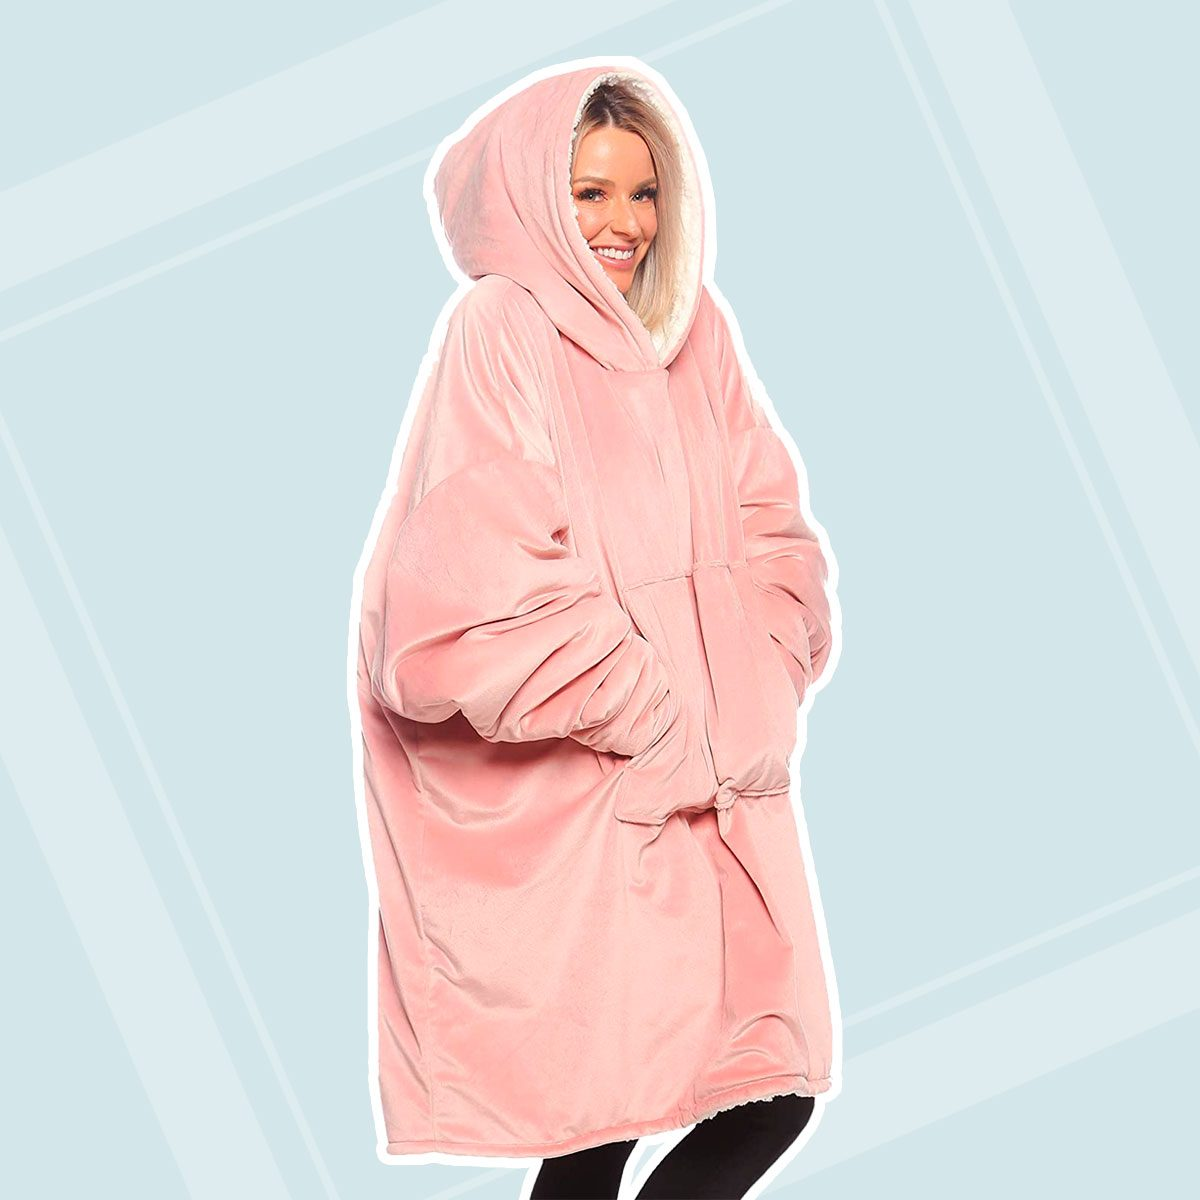 THE COMFY Original| Oversized Microfiber & Sherpa Wearable Blanket, Seen On Shark Tank, One Size Fits All